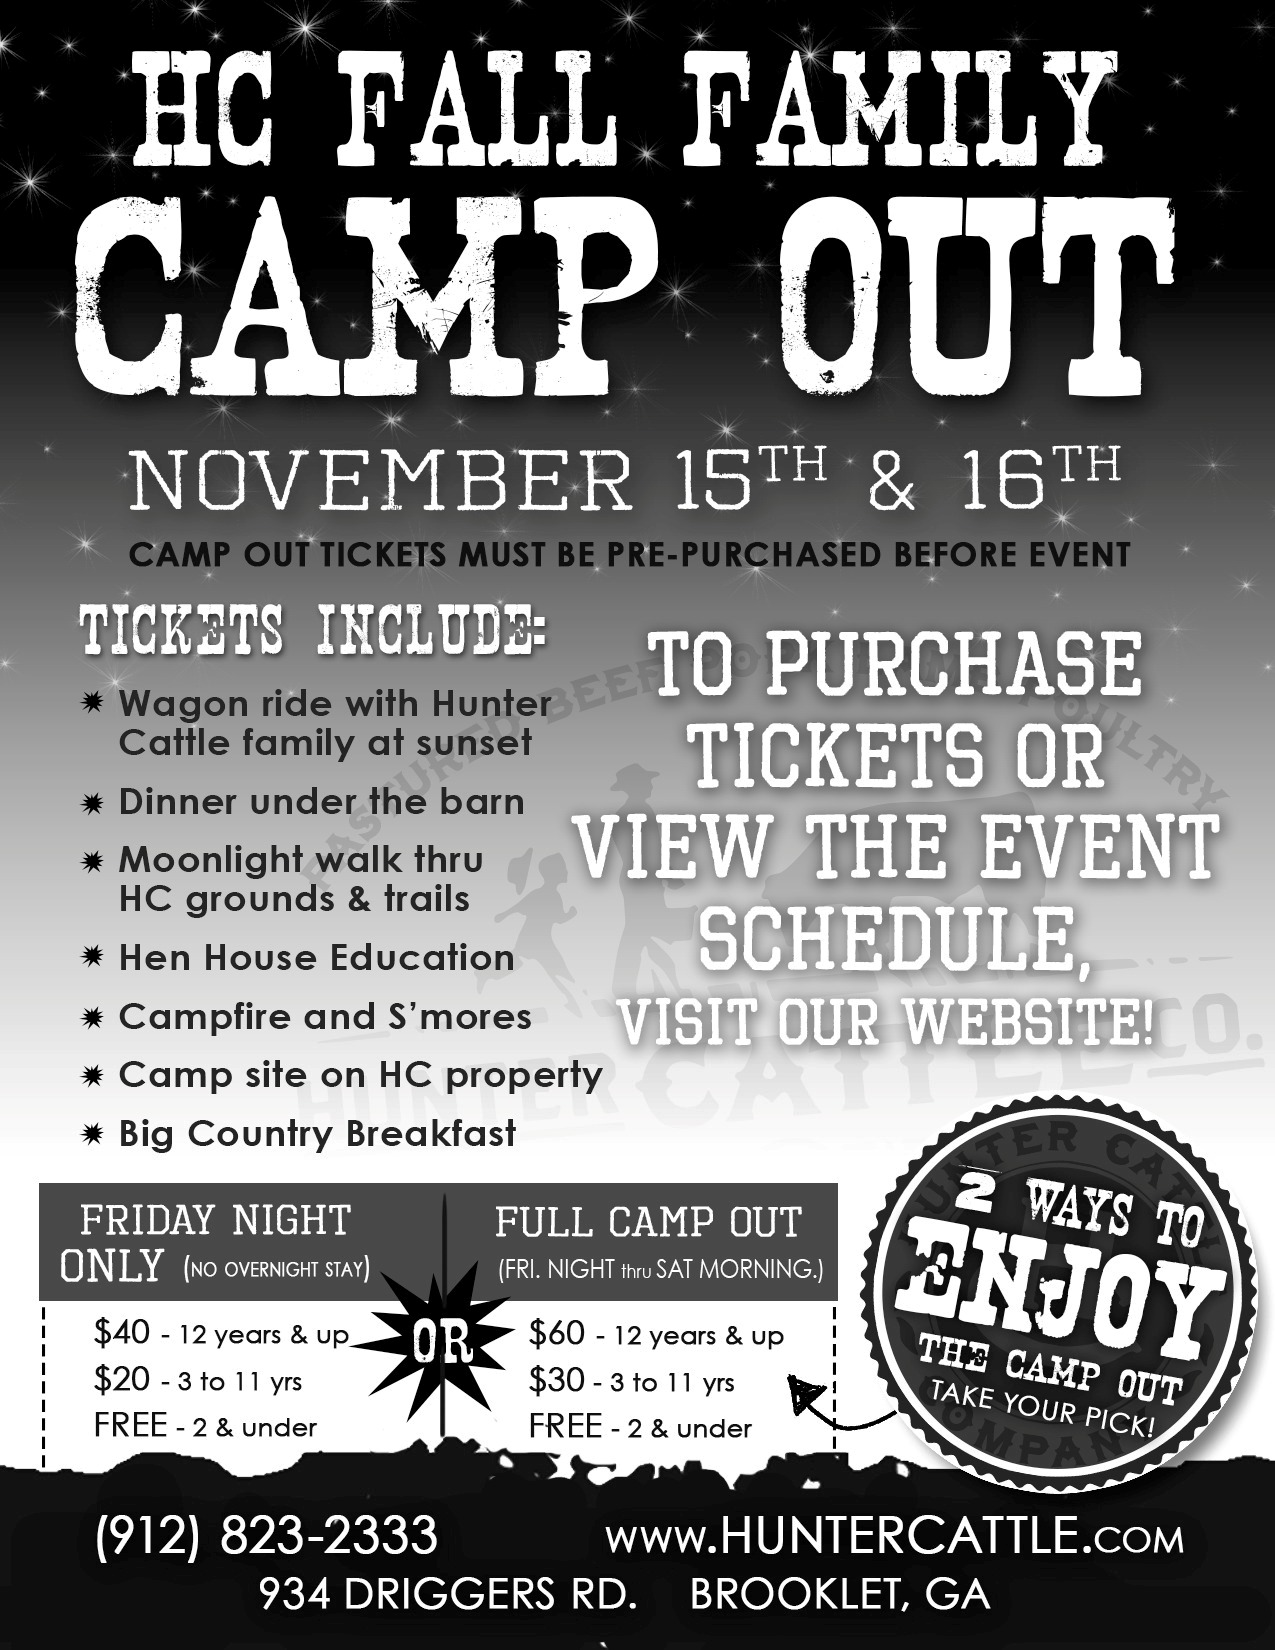 Hunter Cattle Co. Fall 2013 Campout